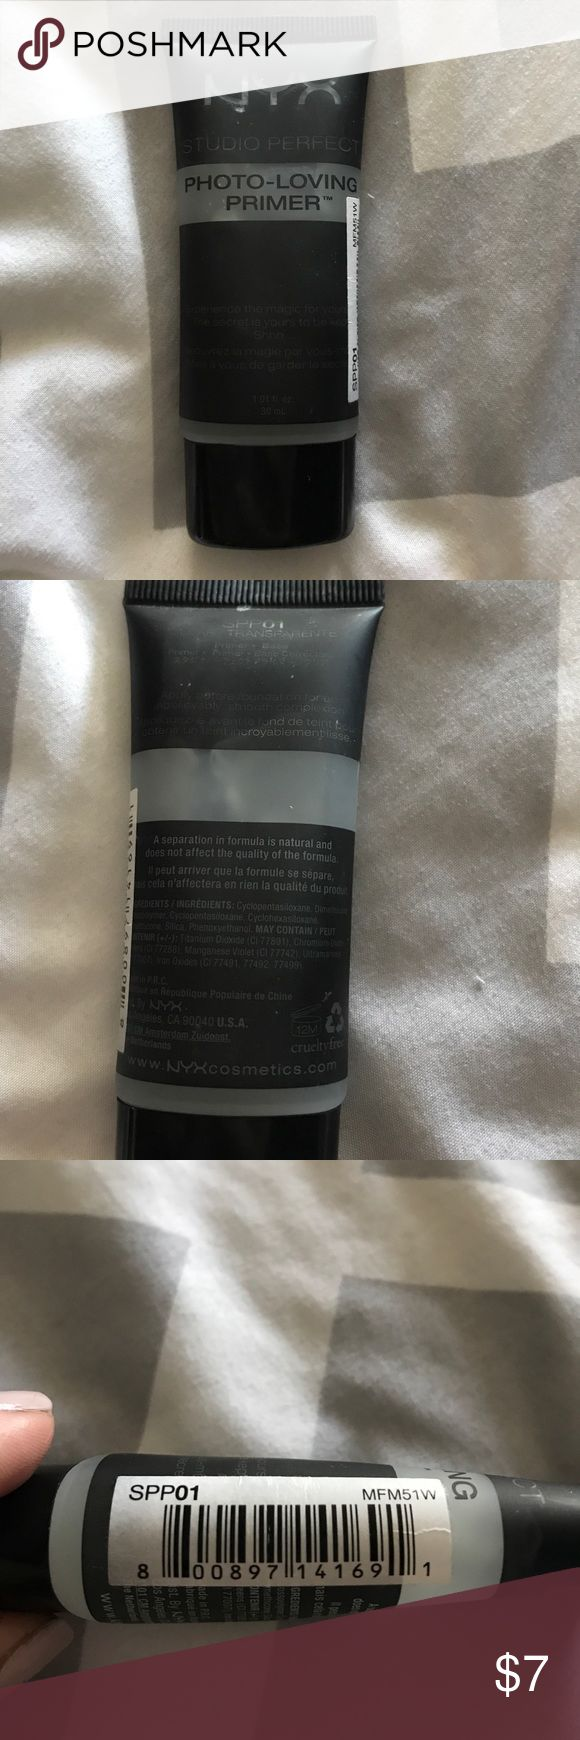 NYX PHOTO LOVING PRIMER NYX PHOTO LOVING PRIMER USED TWICE NYX Makeup Face Primer